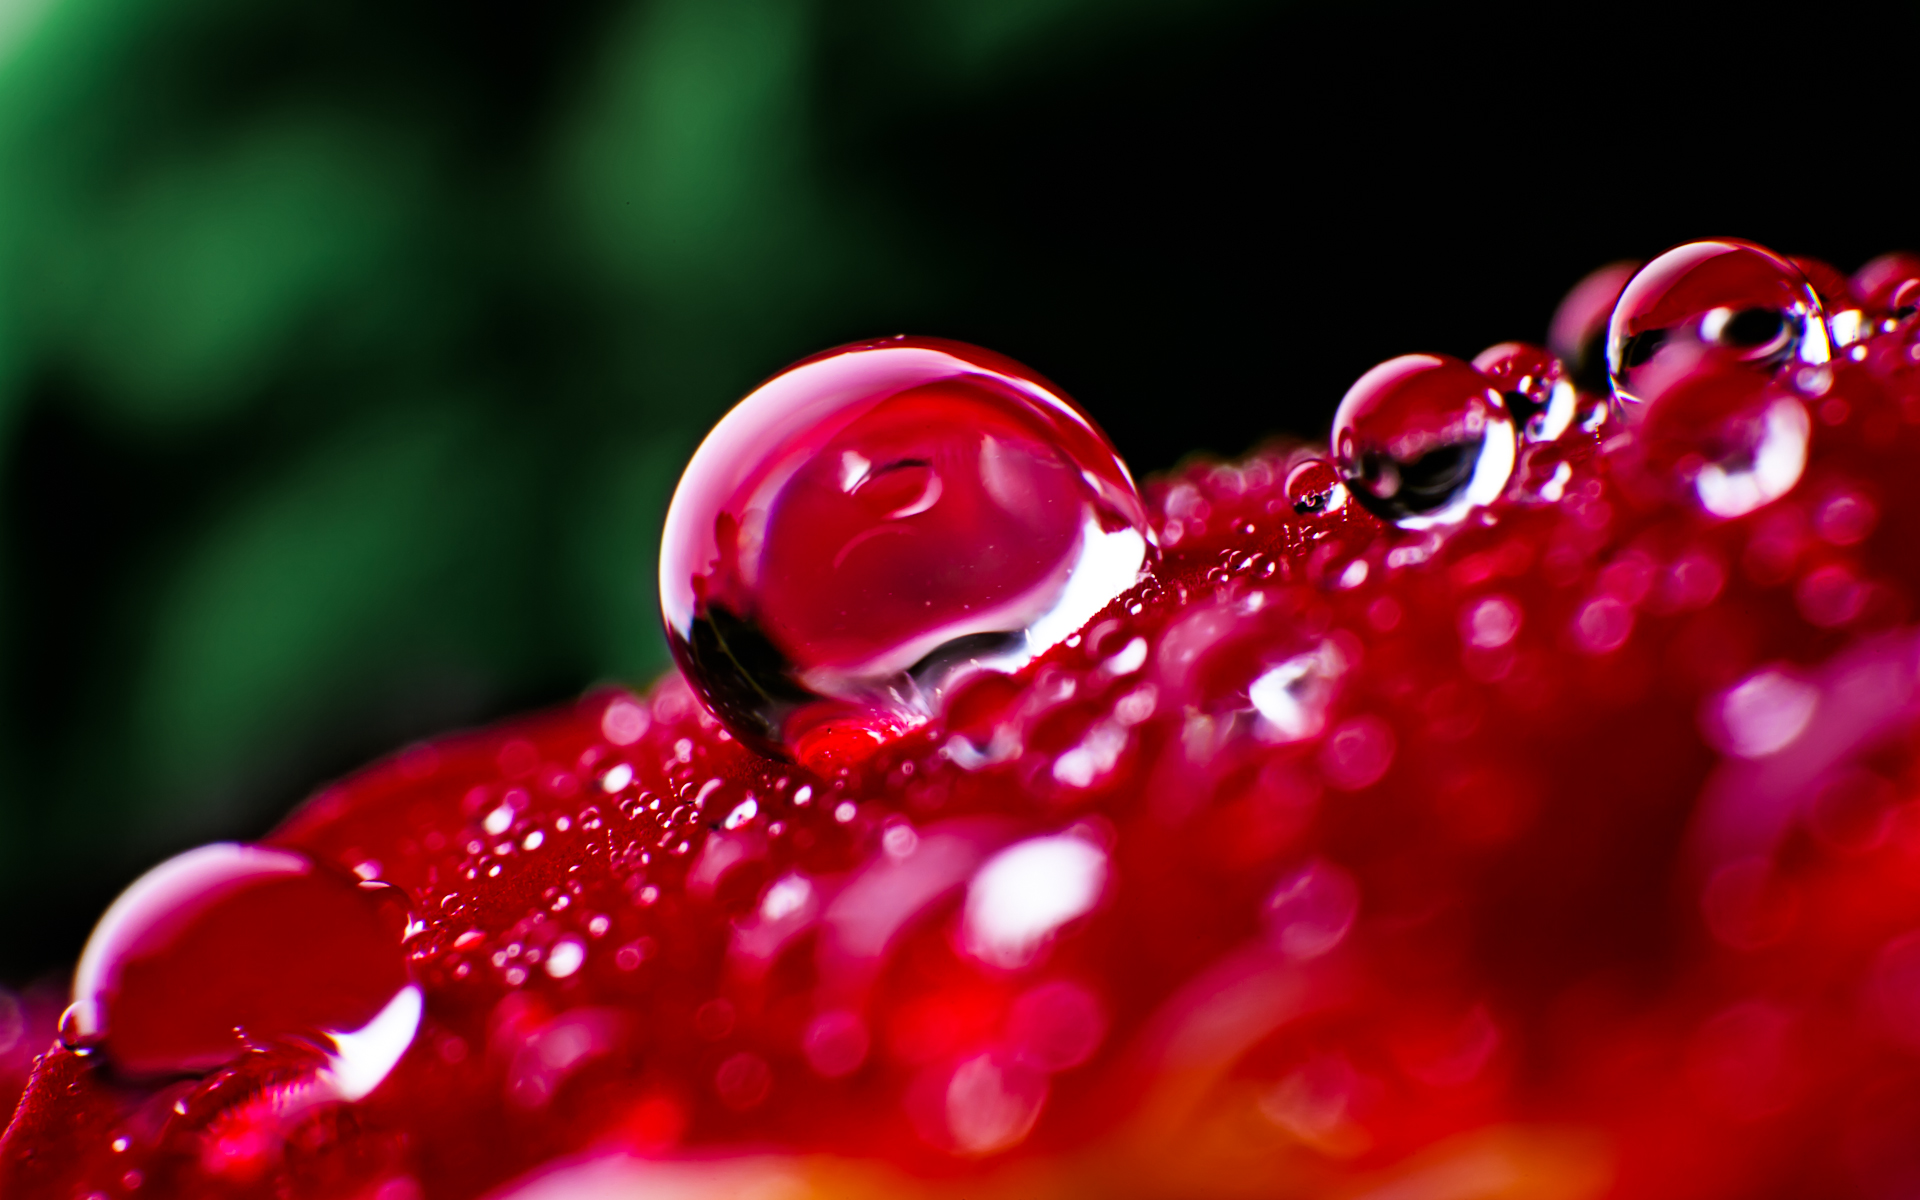 Extraordinary Waterdrops Wallpapers 1920x1200 HD Wallpapers